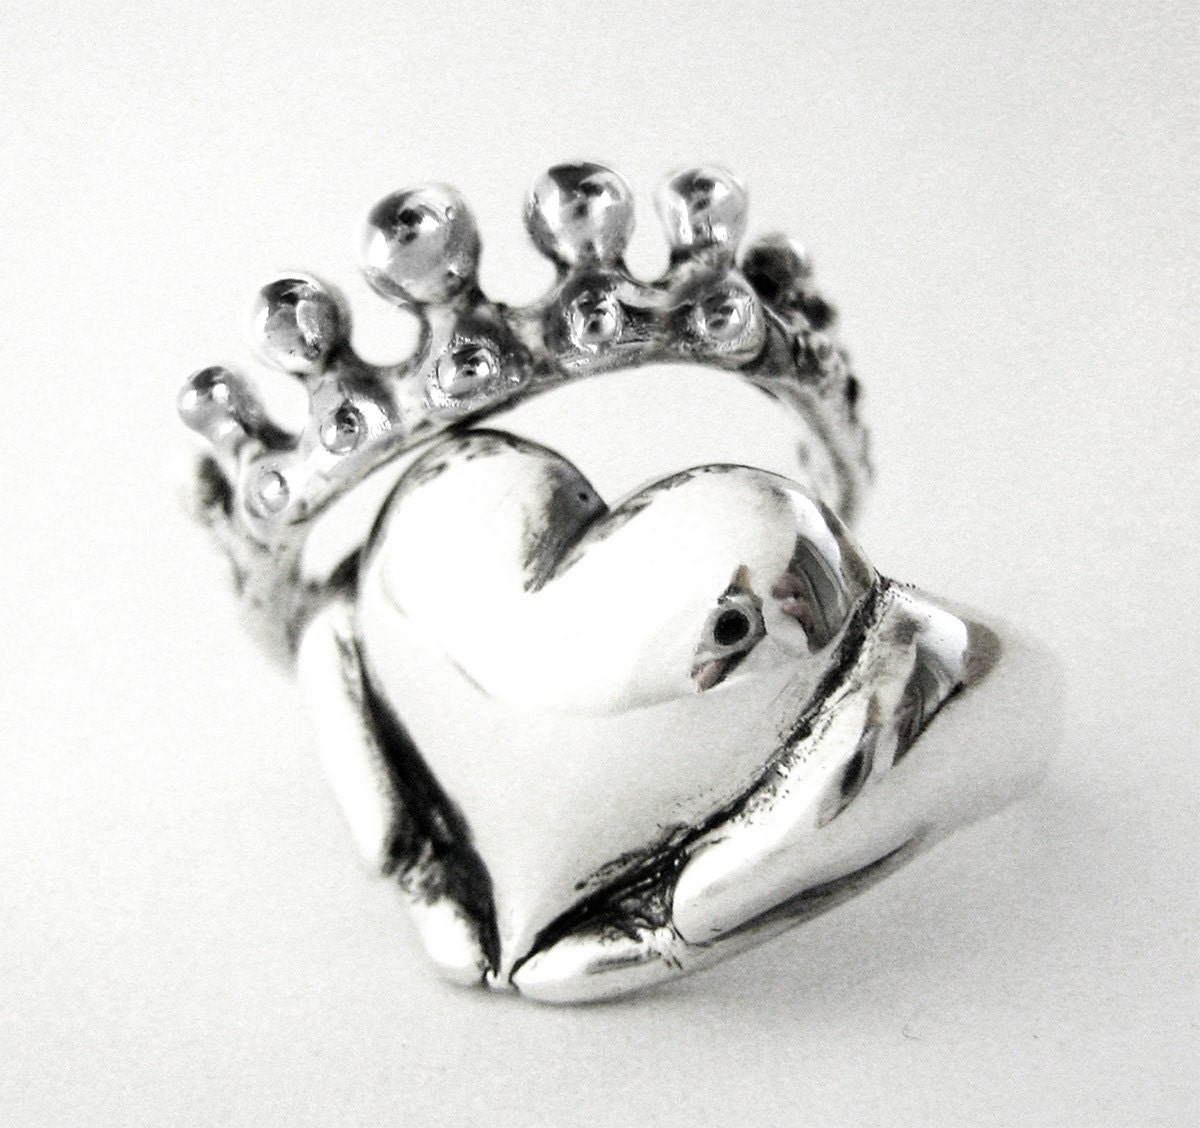 rockabilly claddagh wedding set new claddagh wedding bands Claddagh Stacking Rings Alternative Stacking Engagement Ring Non Traditional Wedding Ring Set for her Celtic Irsih Promise Ring 67 81b